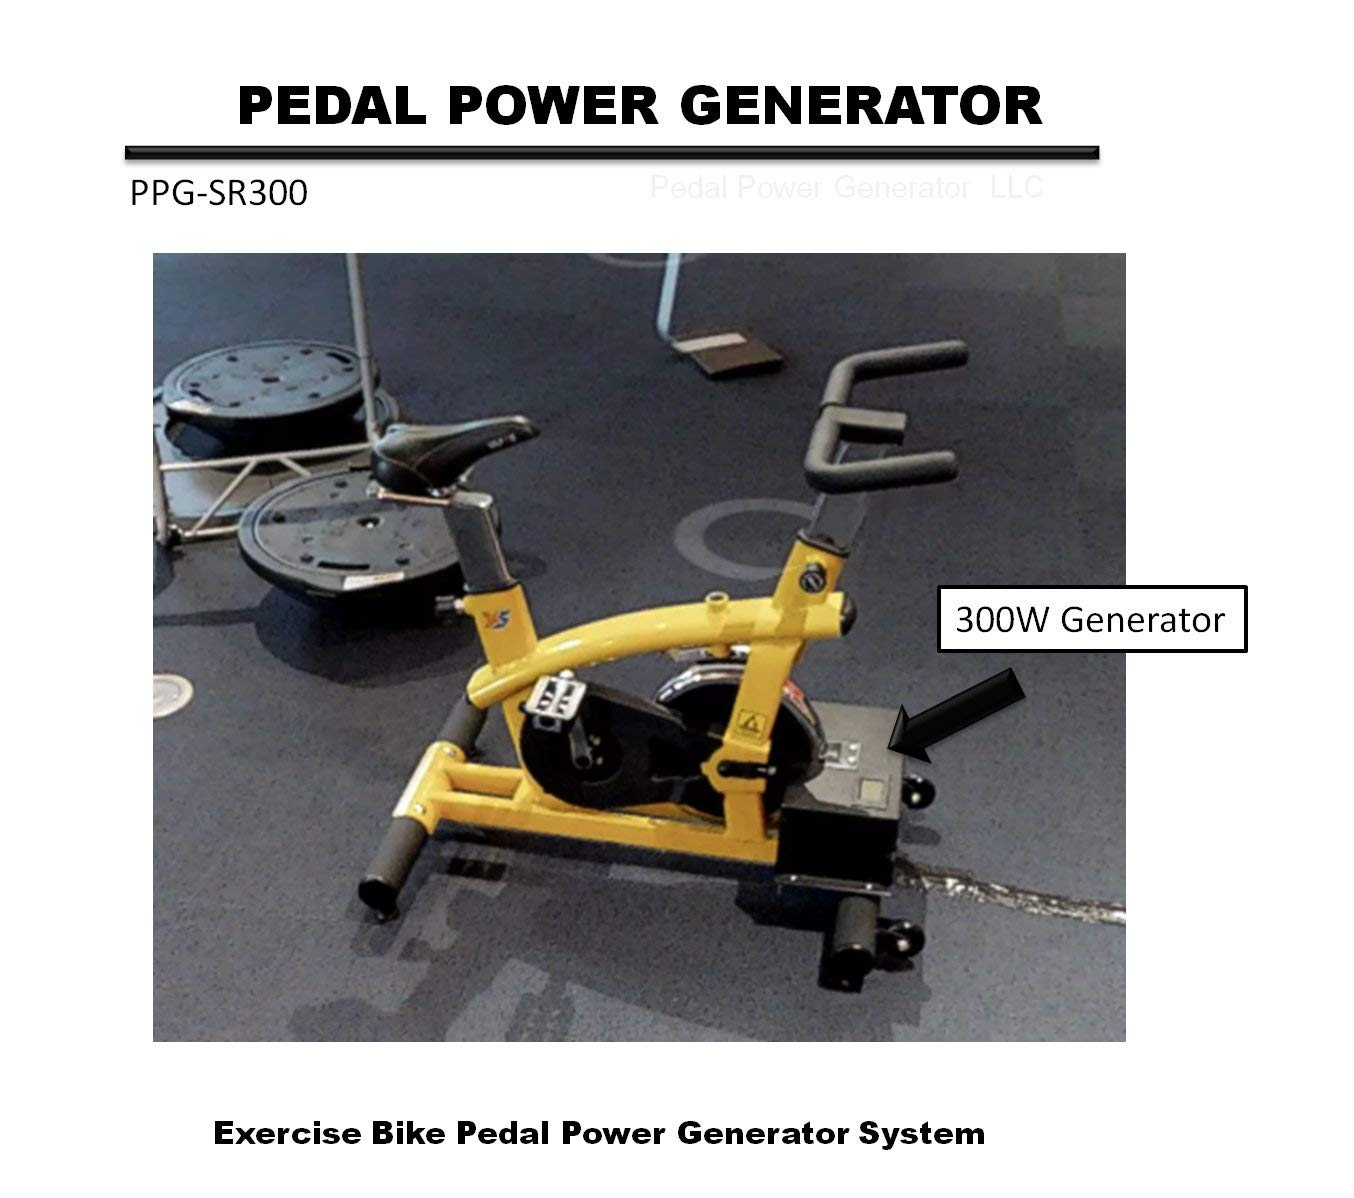 Pedal-Power-Generator-Stationary-Exercise-Bike-Pedal-Power-Generator-System